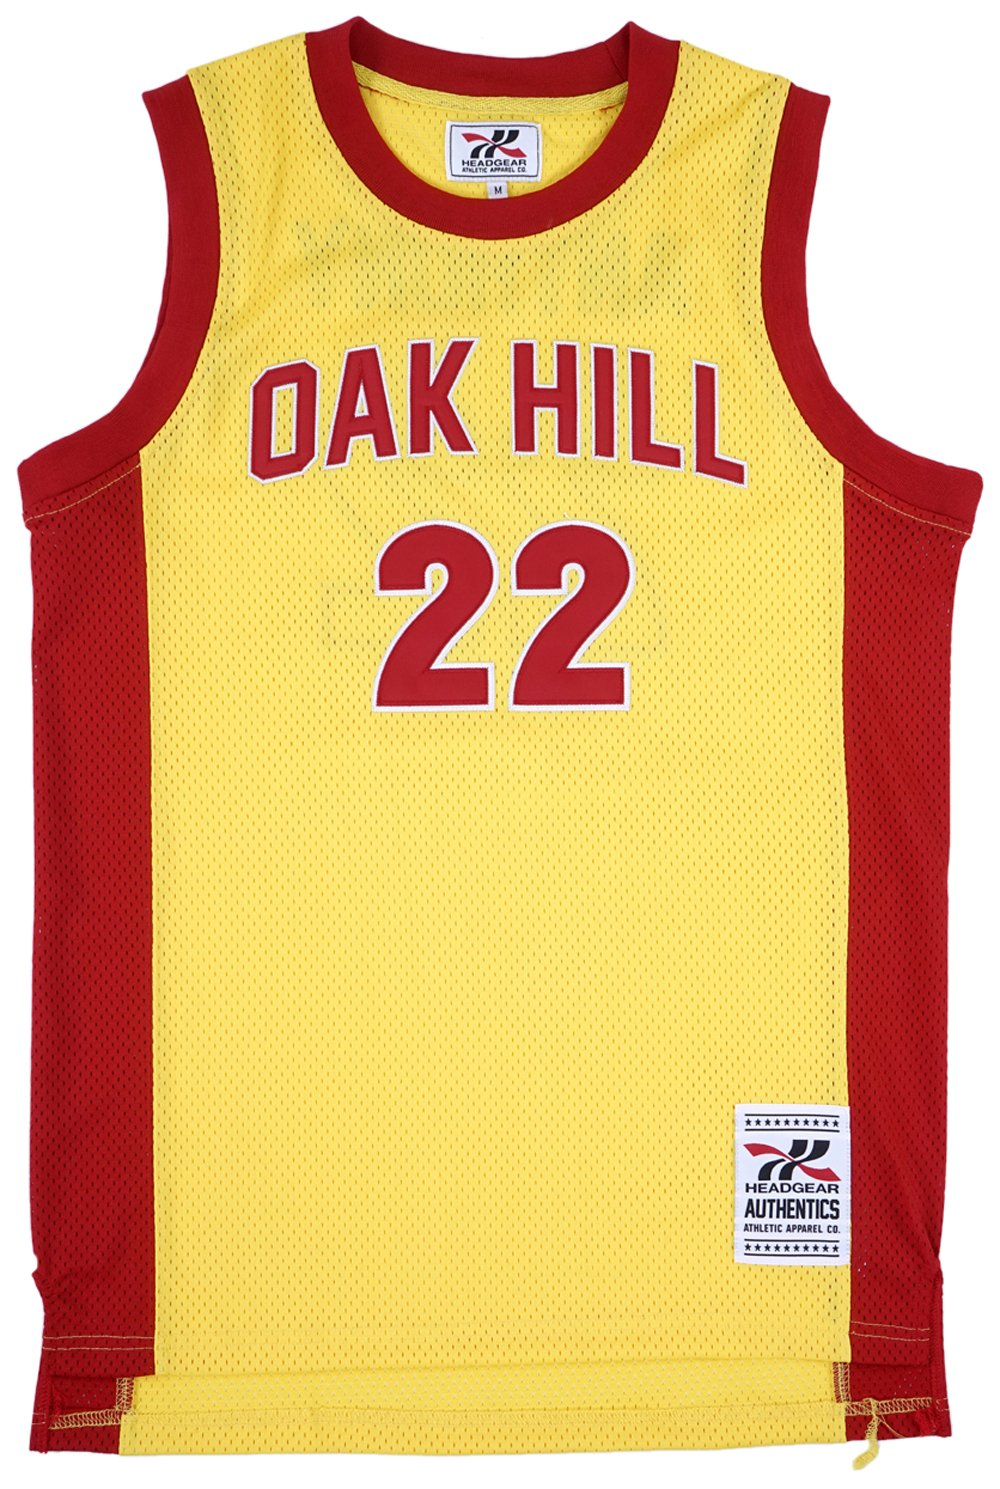 on sale afcf9 a7c6e Carmelo Anthony Oak Hill HS Jersey in Yellow. M-2XL ...